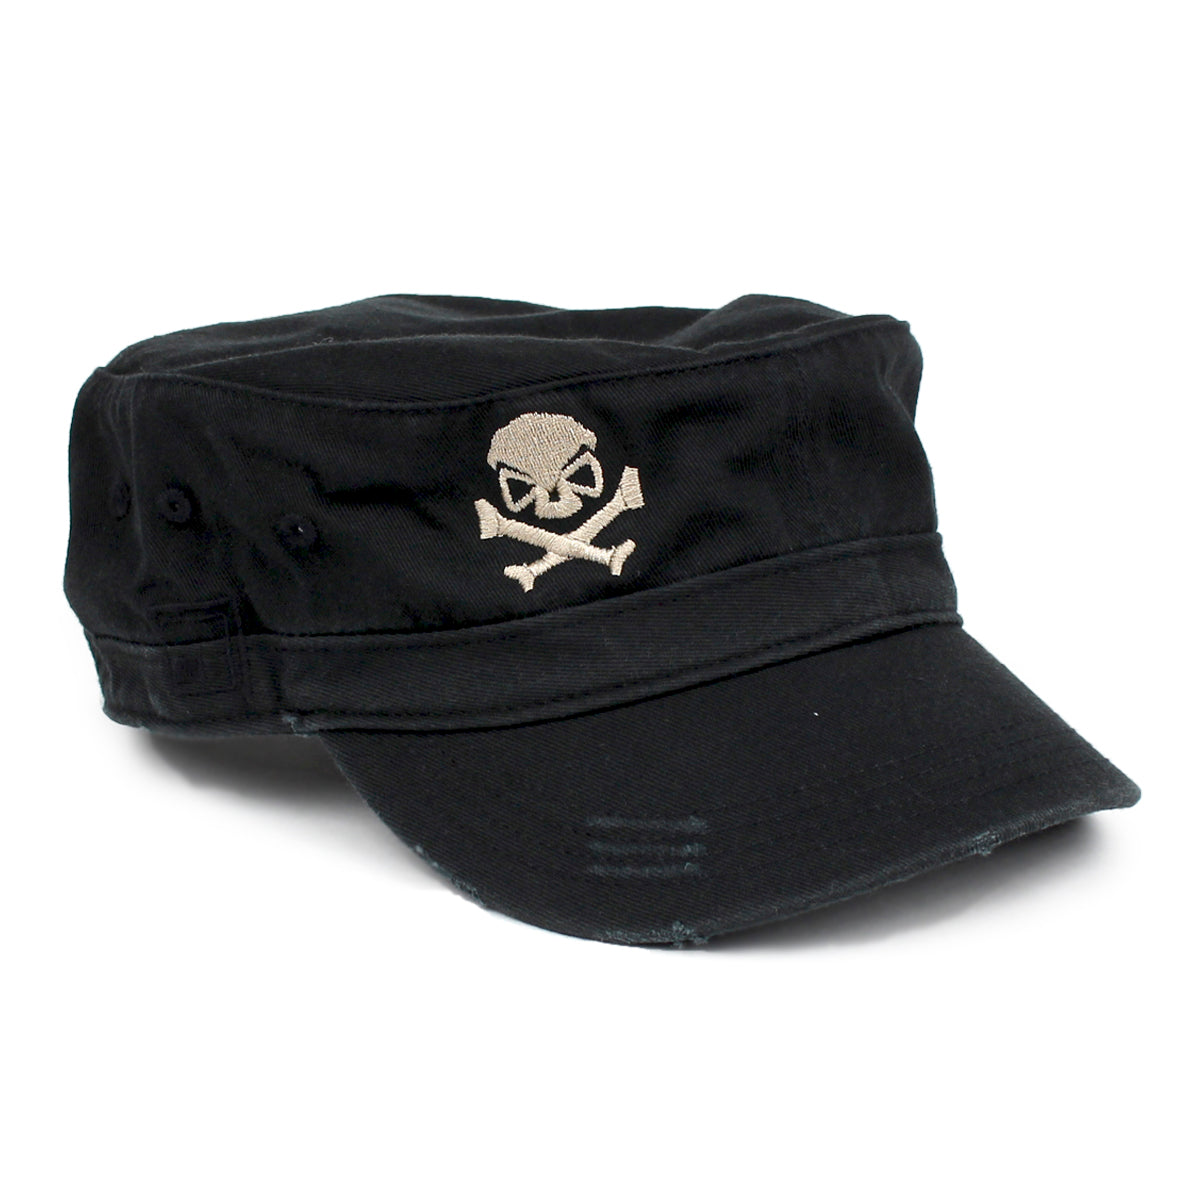 Cadet Cap - Black/Pewter - Hats - Pipe Hitters Union